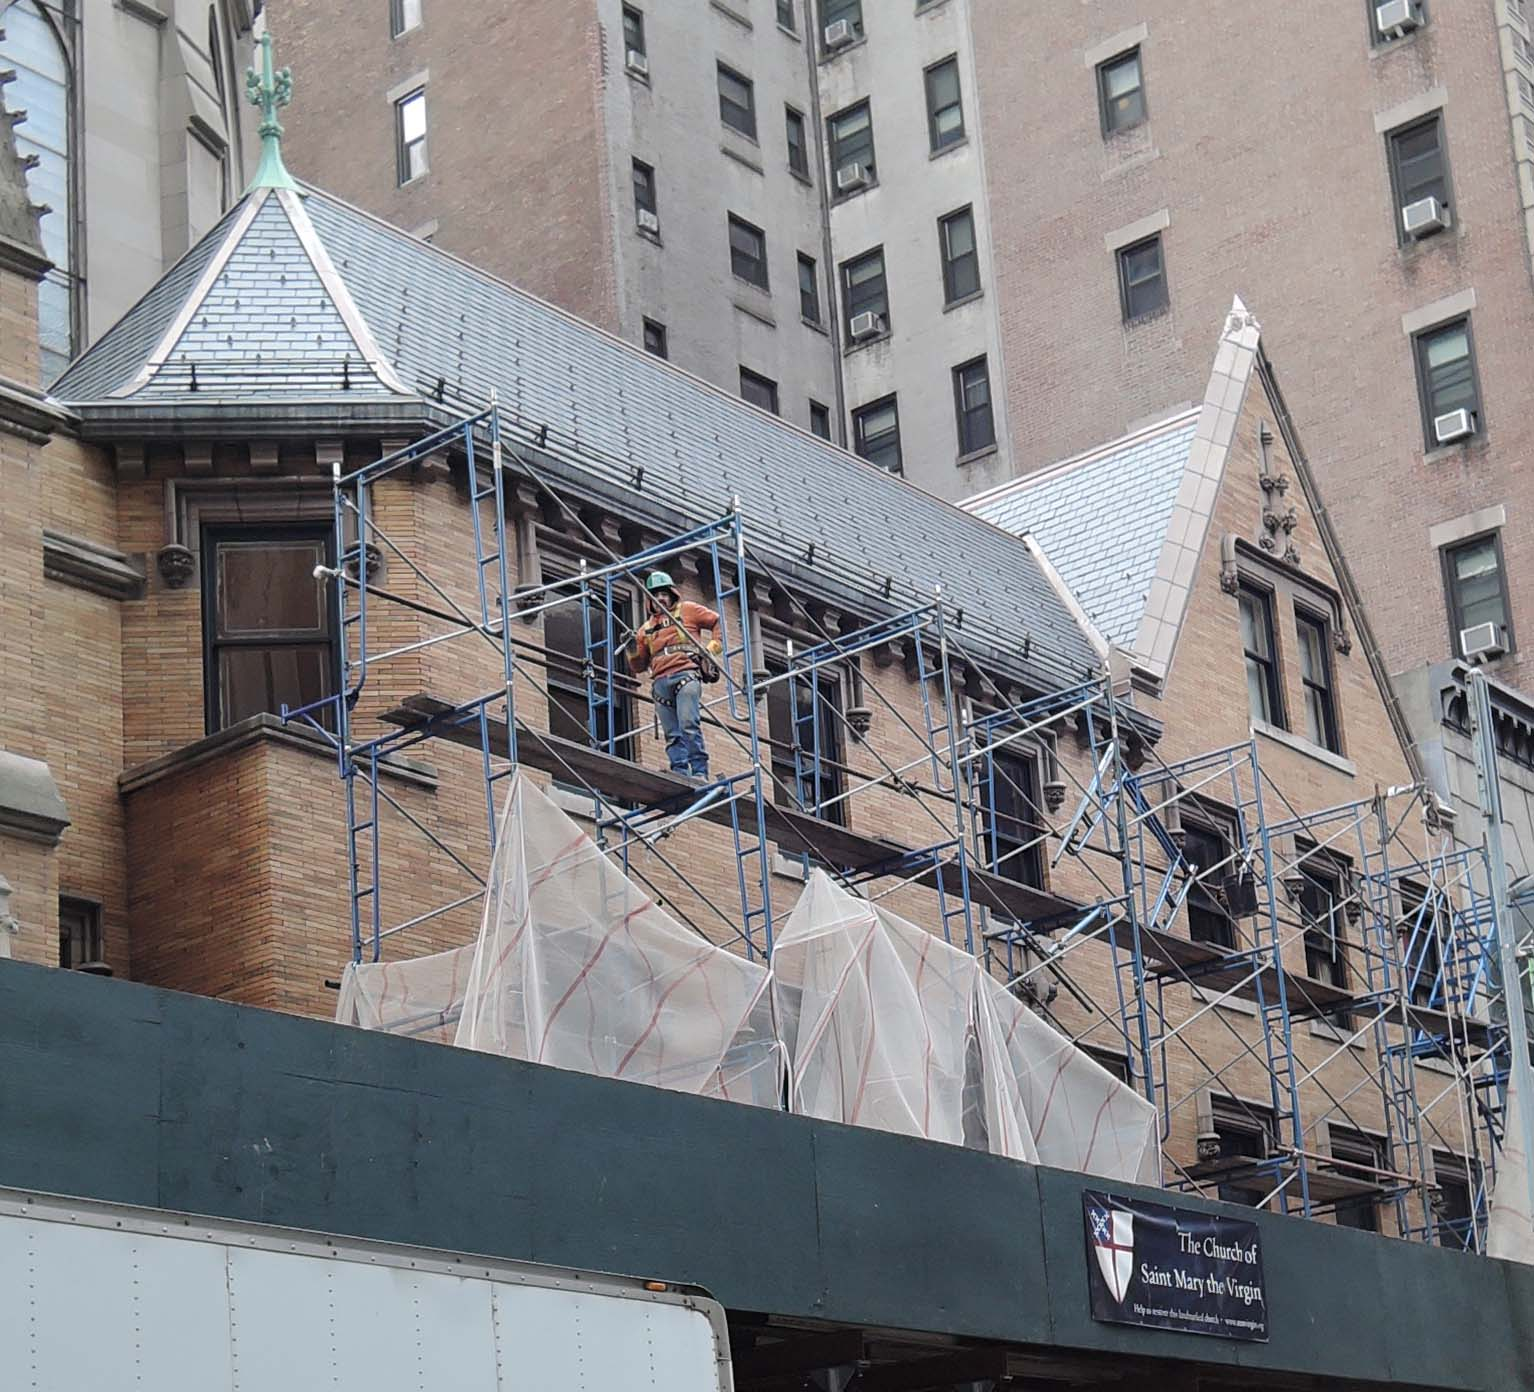 The work on the Rectory roof, the 47th Street Entrance, and the Lady Chapel is complete.The scaffolding begins to come down on Friday, February 3.